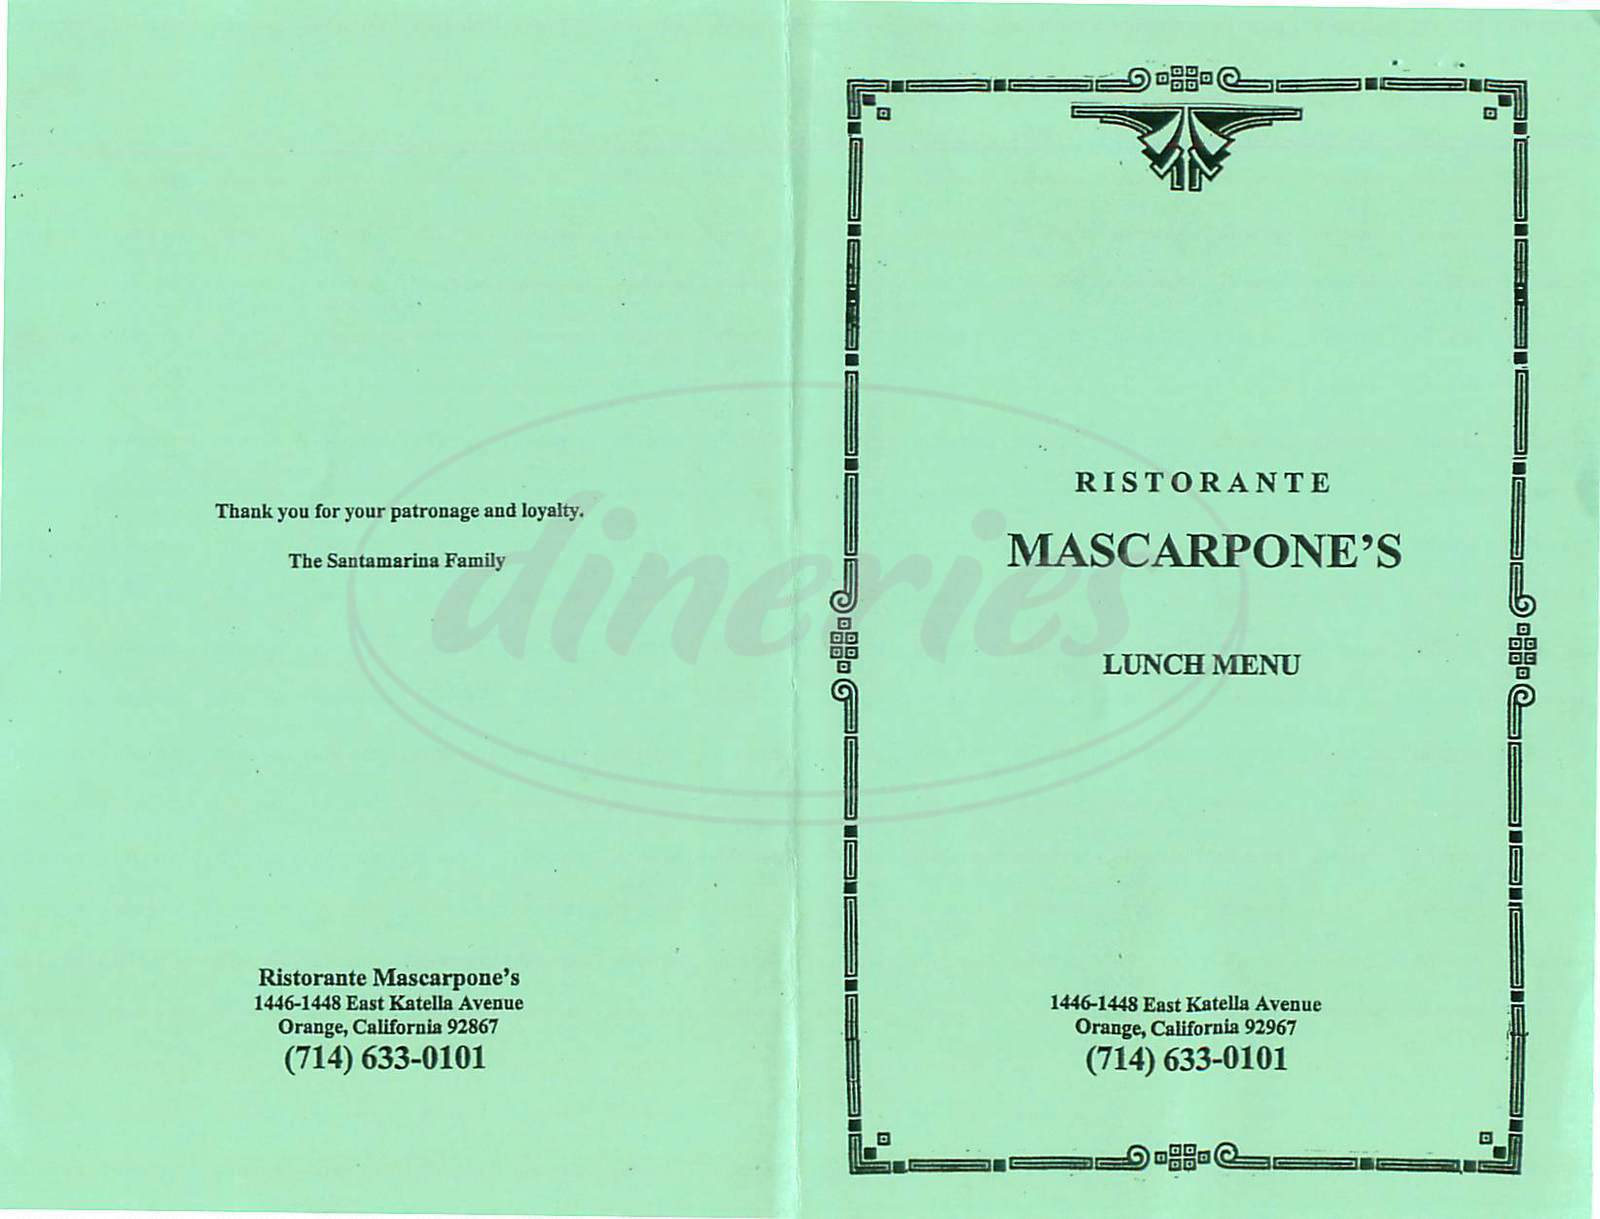 menu for Mascarpones